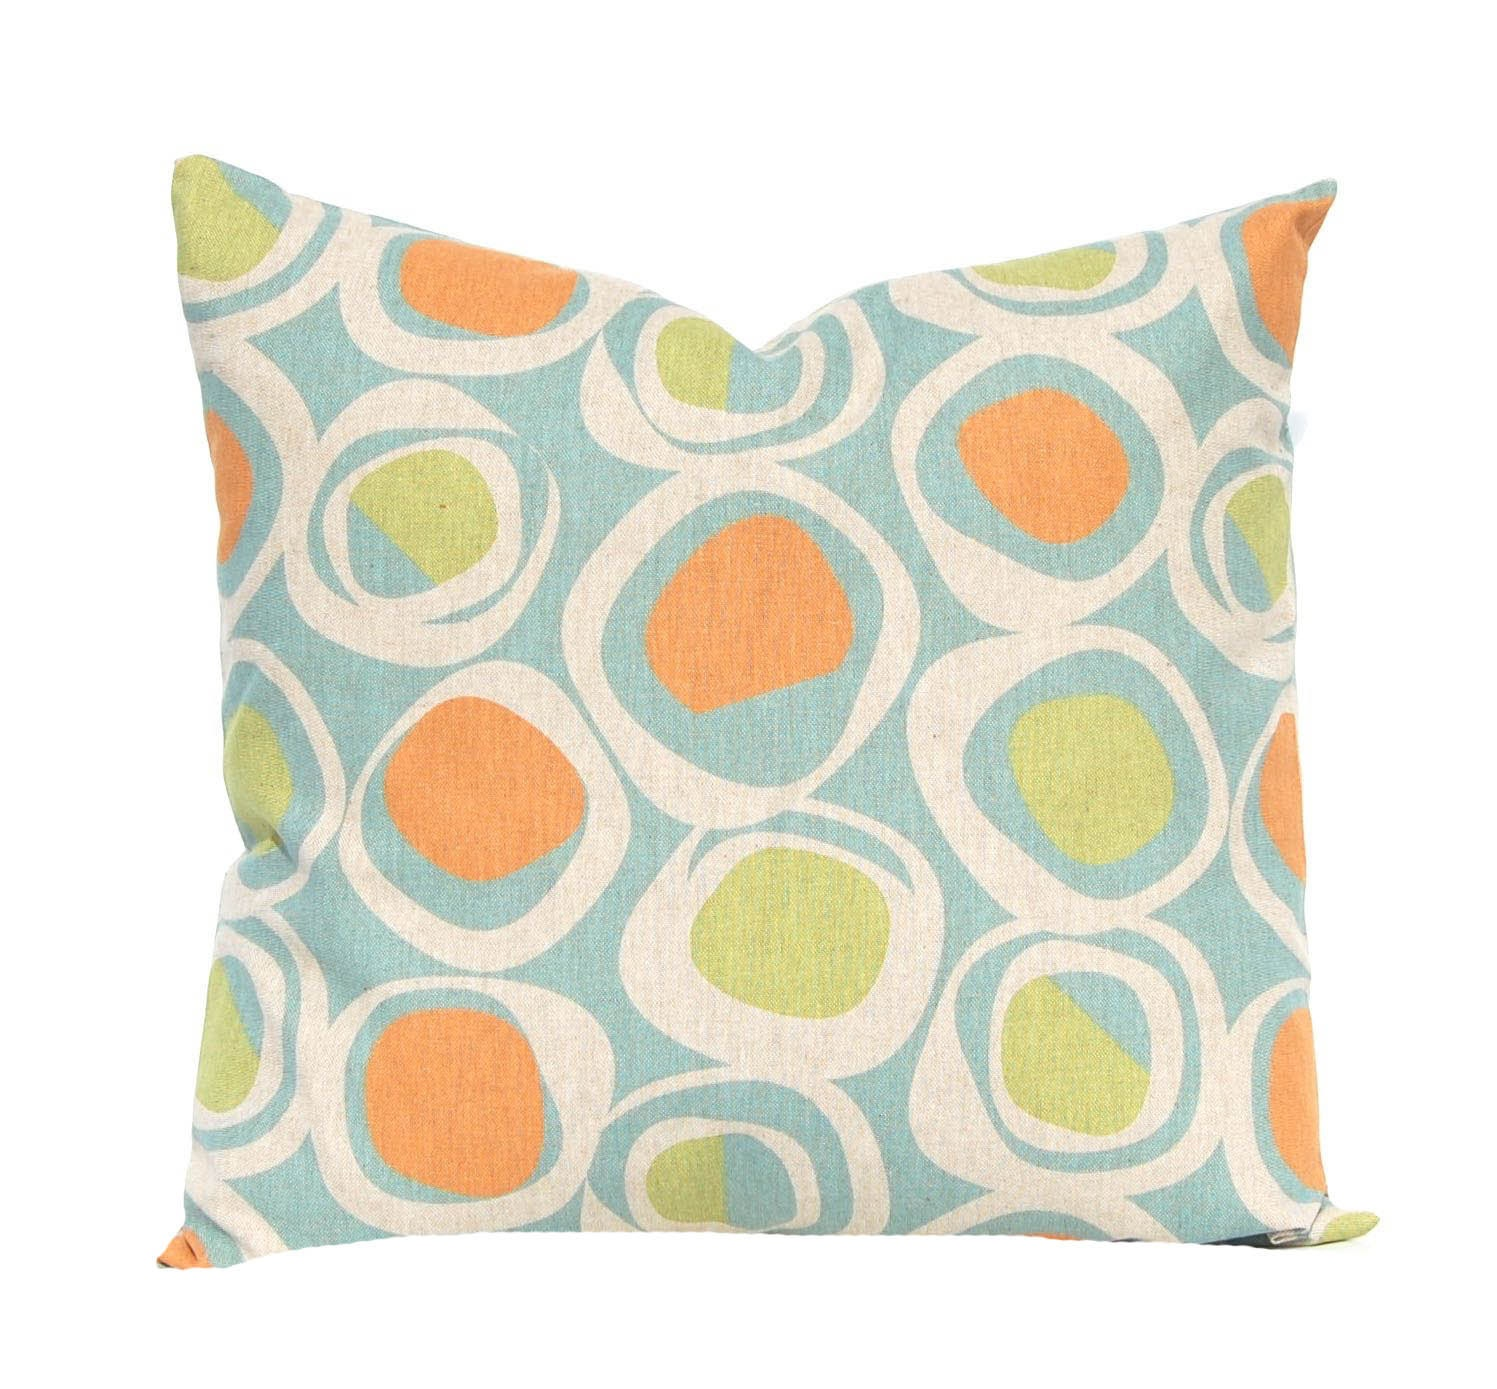 Etsy Throw Pillow Sets : Throw Pillow Covers Fall Pillow Covers by CompanyTwentySix on Etsy